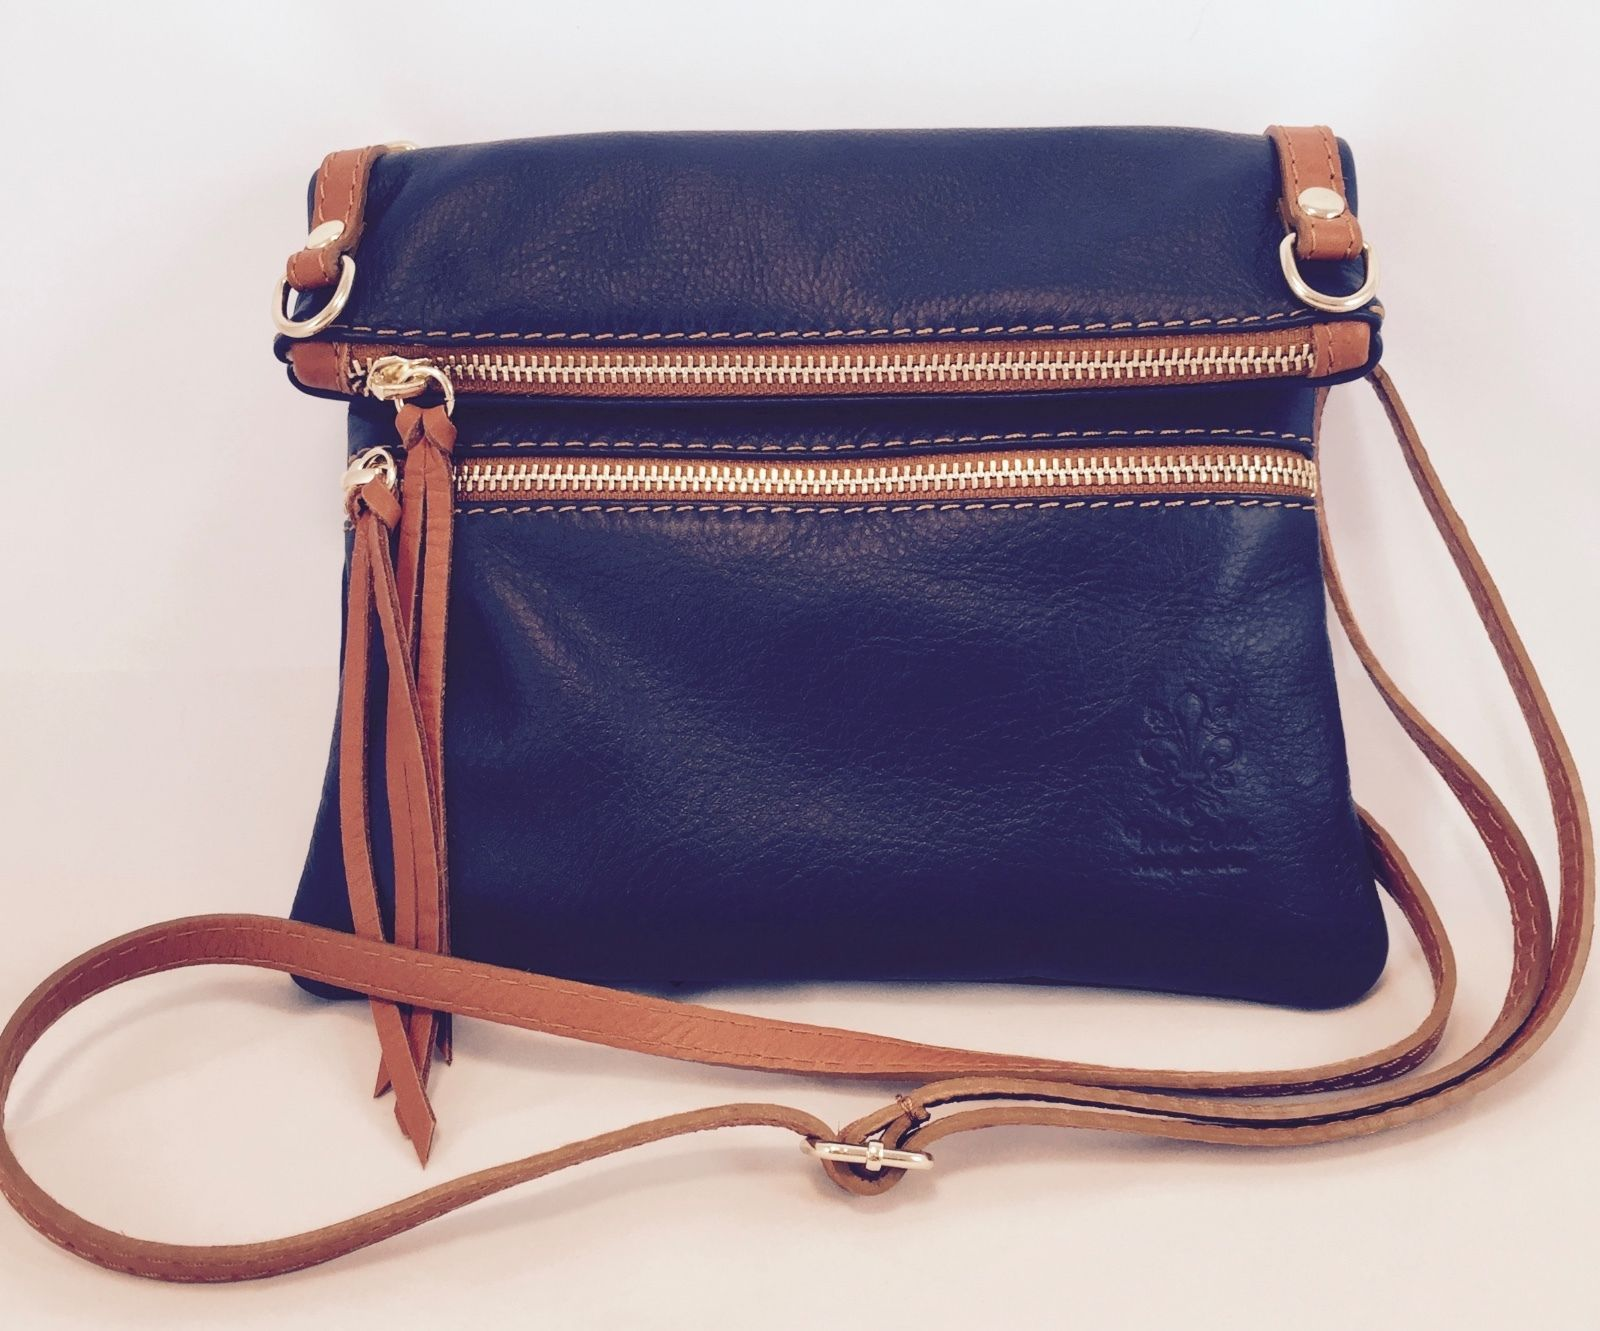 New Made in Italy Navy and Light Brown Italian Leather Crossbody Shoulder Bag